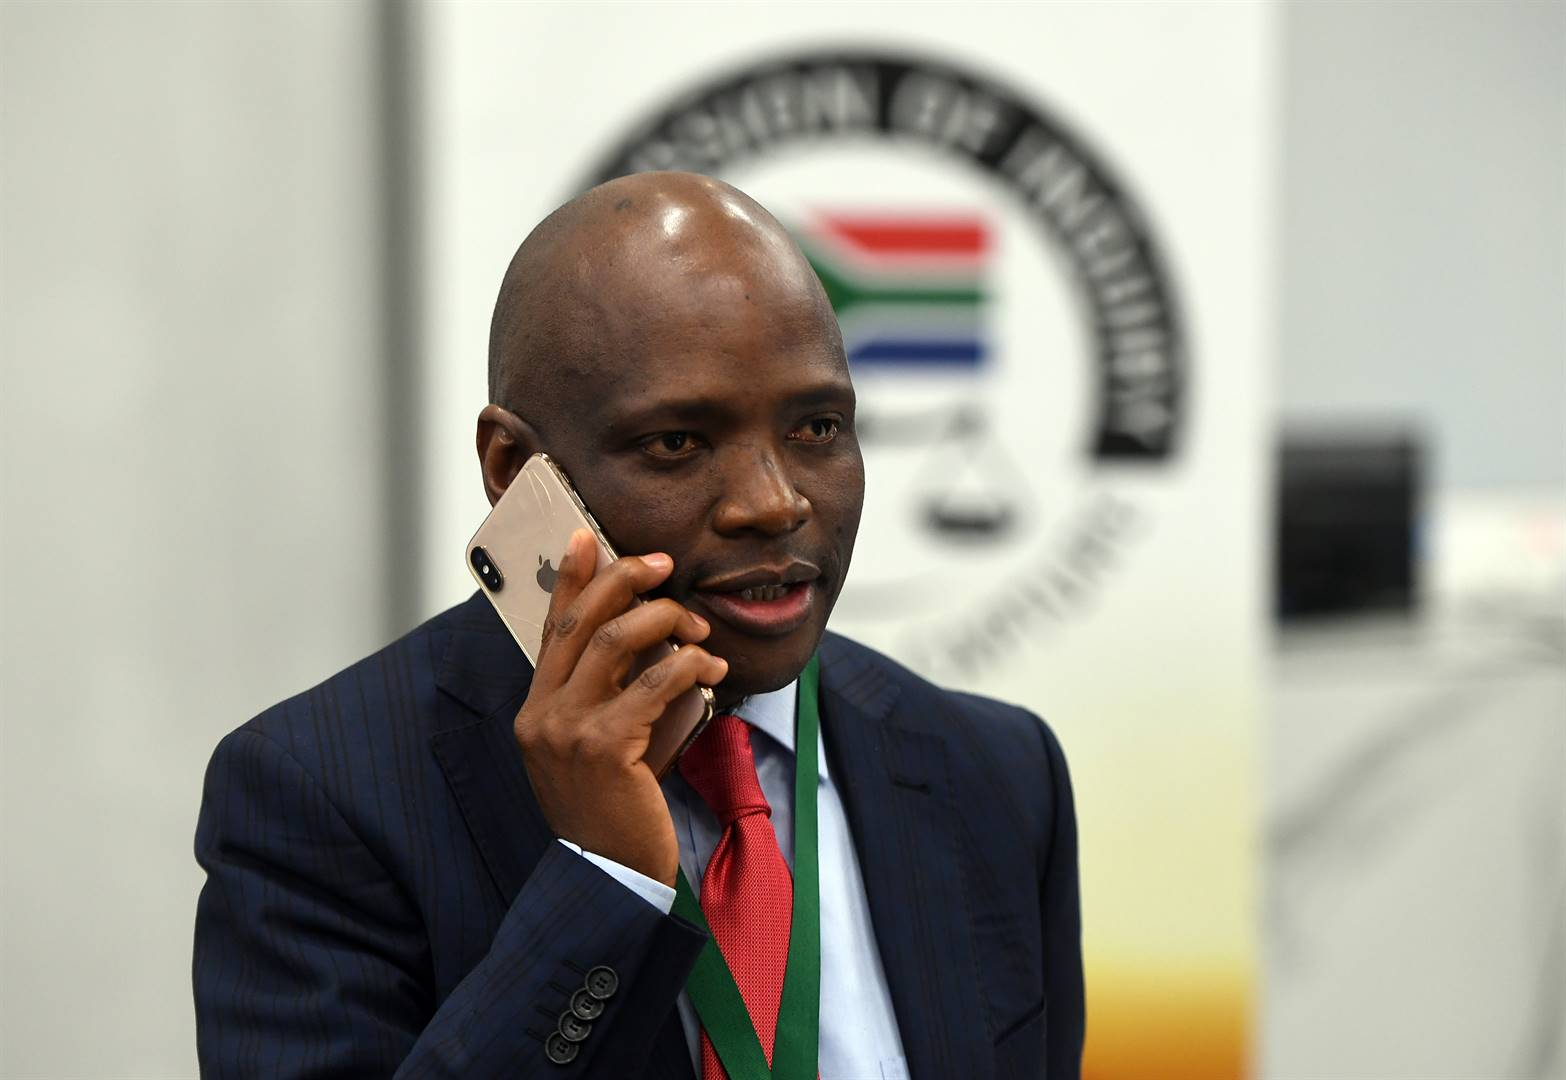 News24.com | Hlaudi Motsoeneng ordered to pay encourage extra than R850k of SABC money susceptible for internal most licensed costs